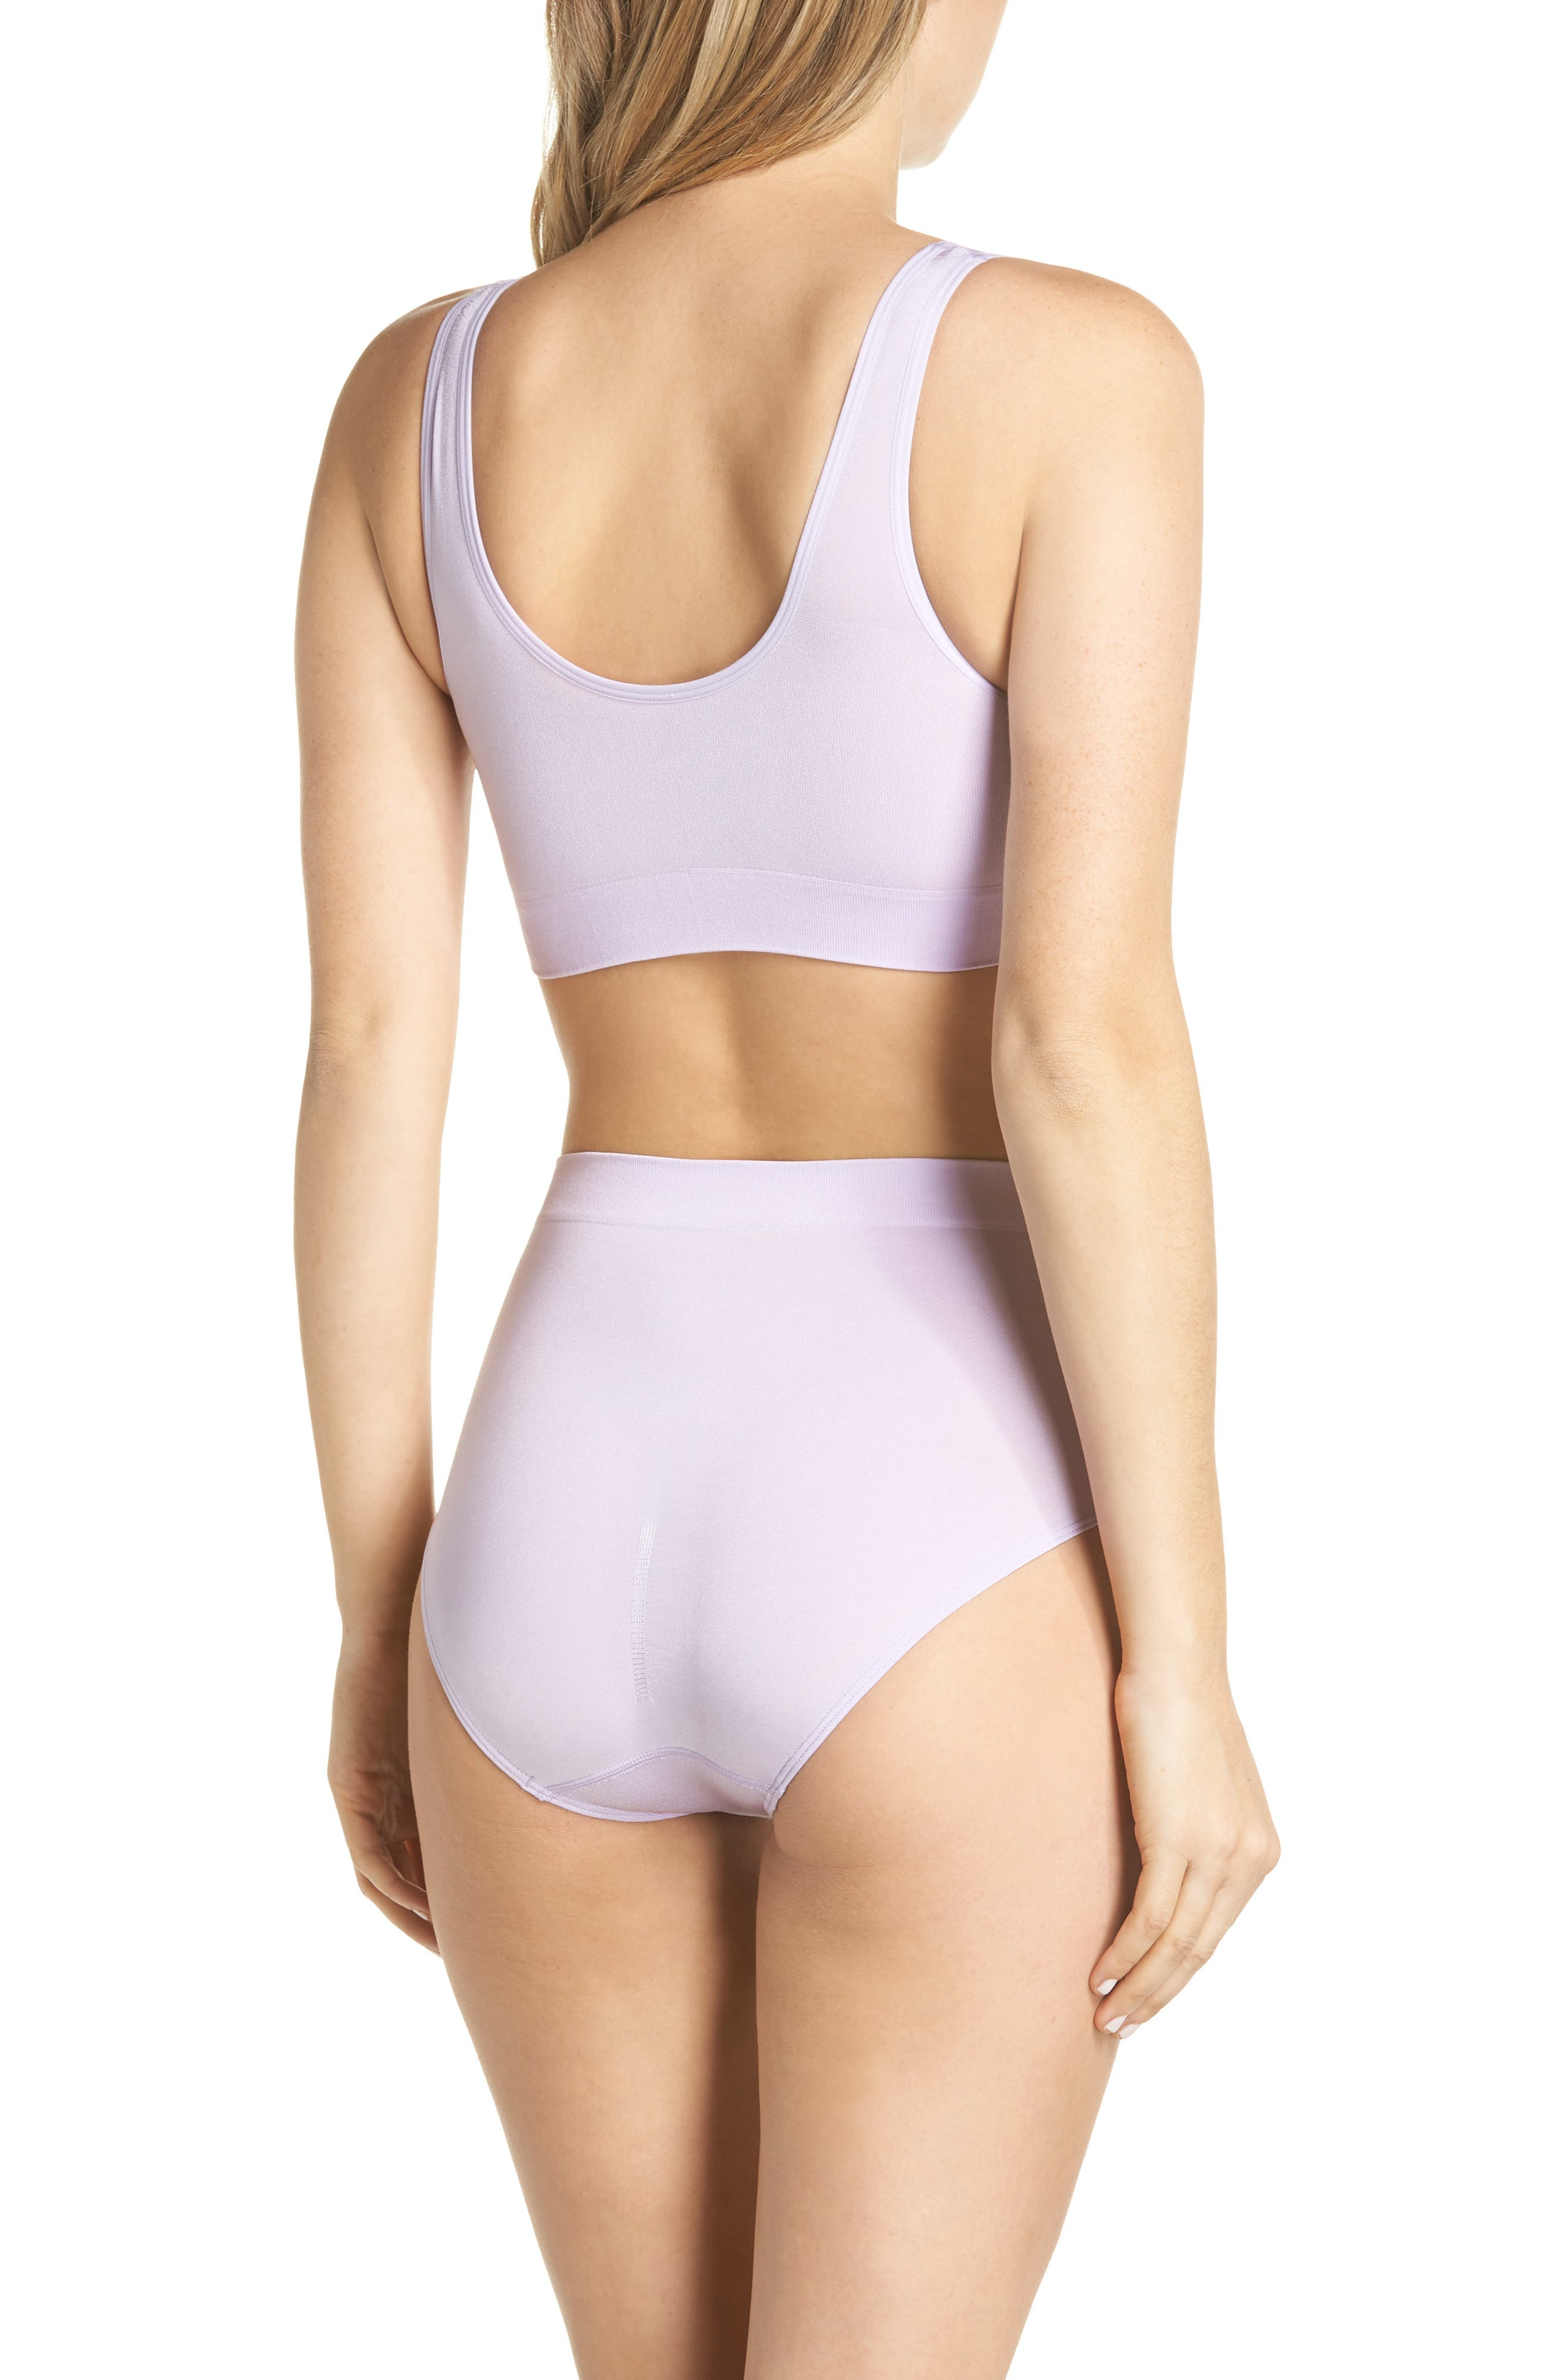 B Smooth Briefs,                             Alternate thumbnail 8, color,                             PASTEL LILAC